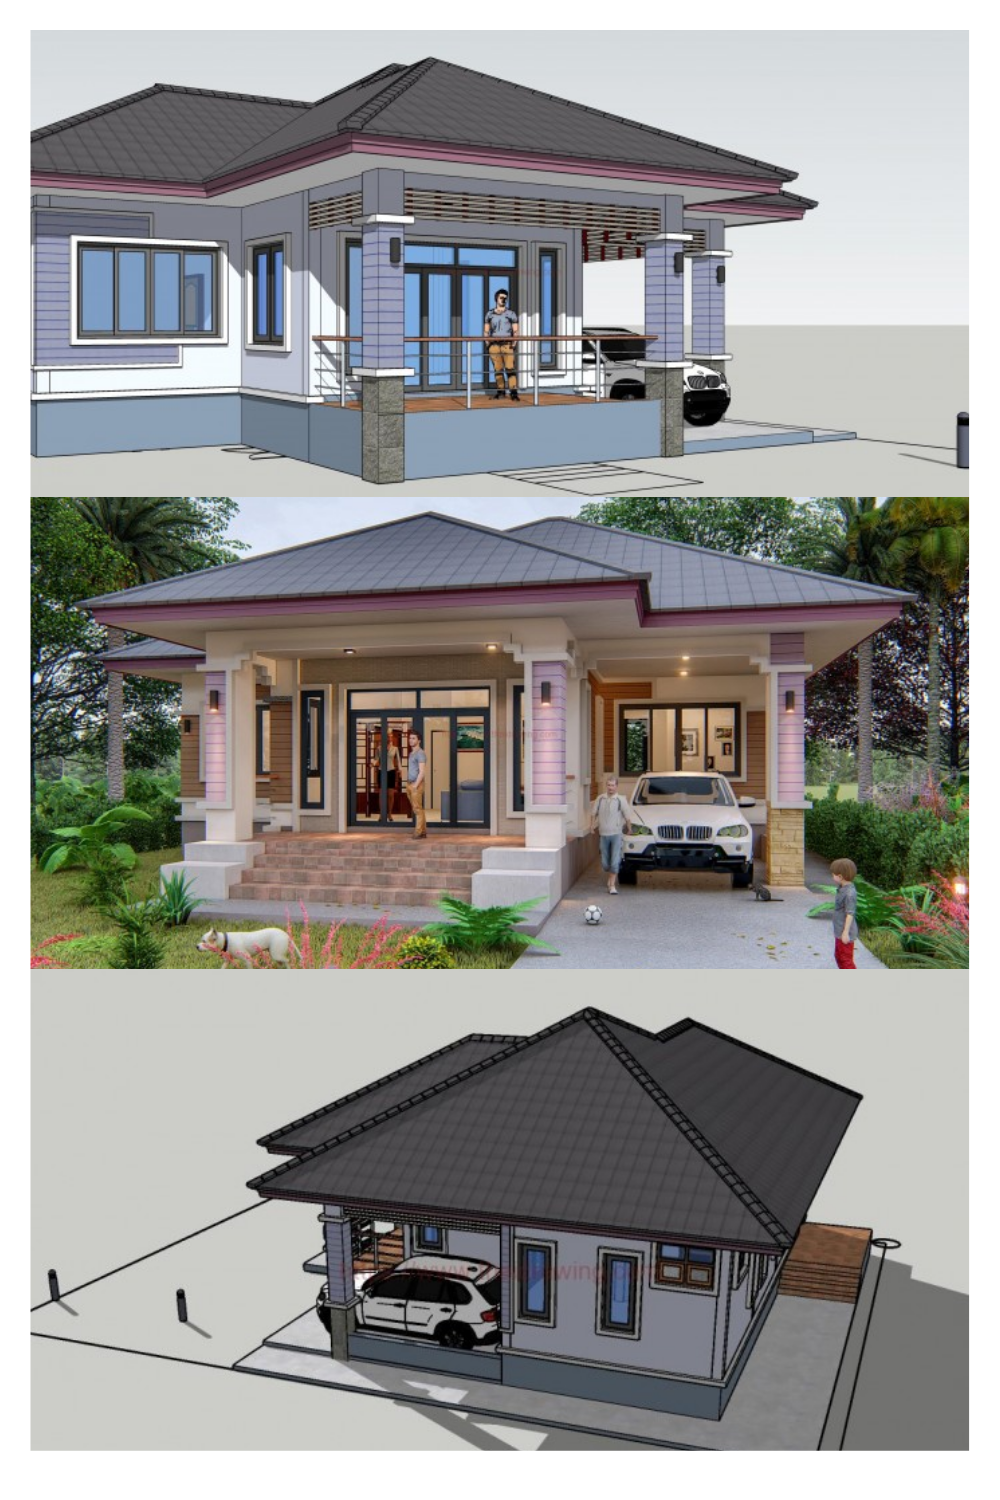 Three Bedroom House Design That Looks Simple Yet Attractive Bungalow Style House Plans Village House Design Three Bedroom House